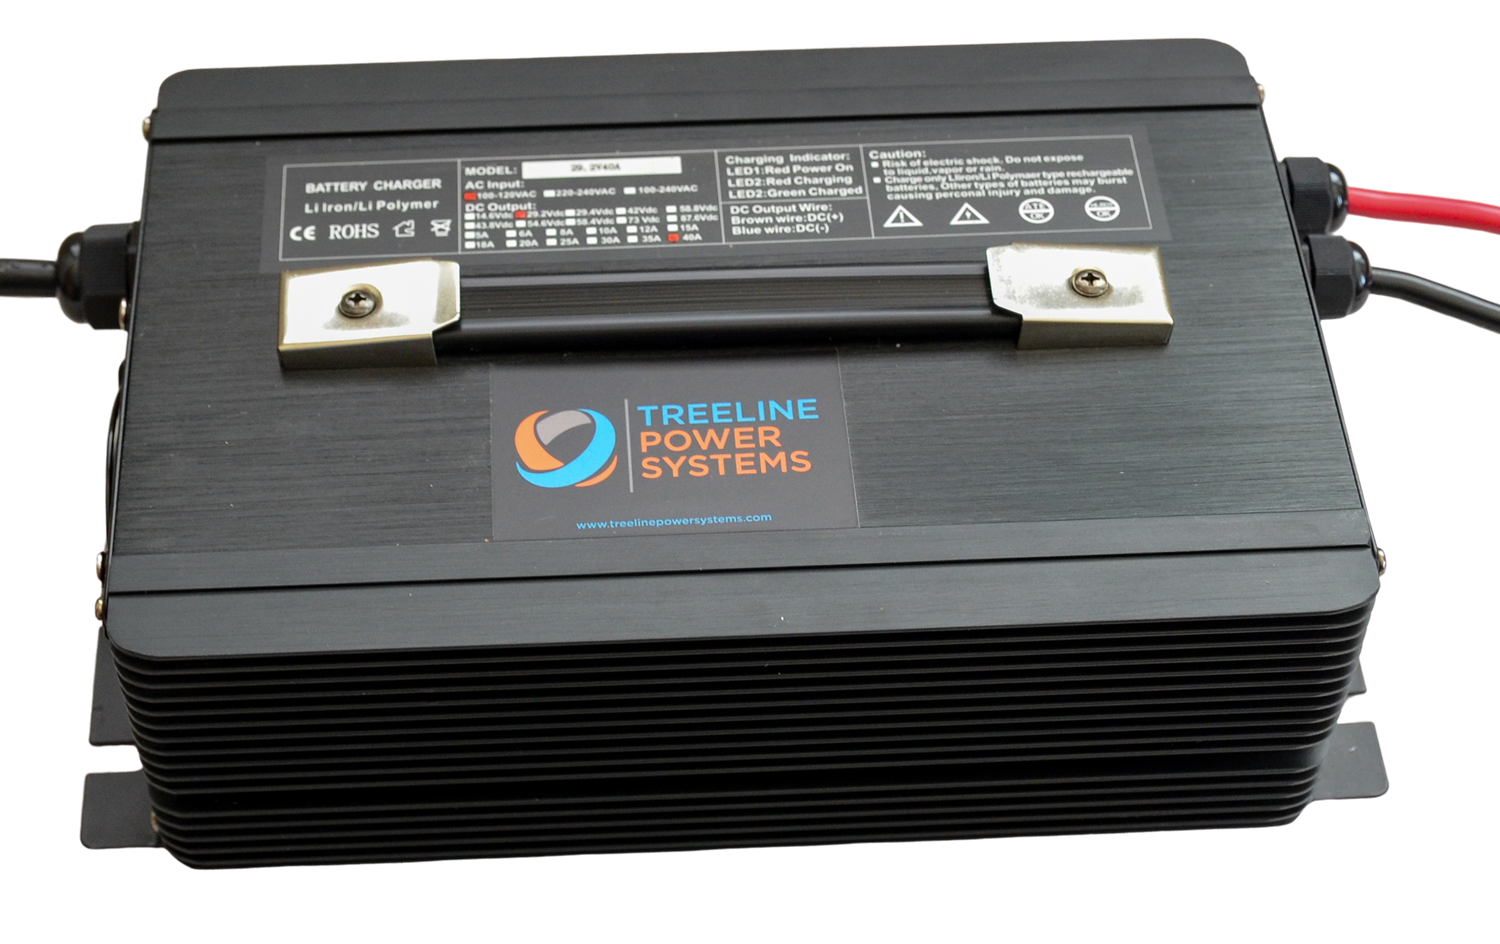 Treeline Power Systems 24V 35a Charger